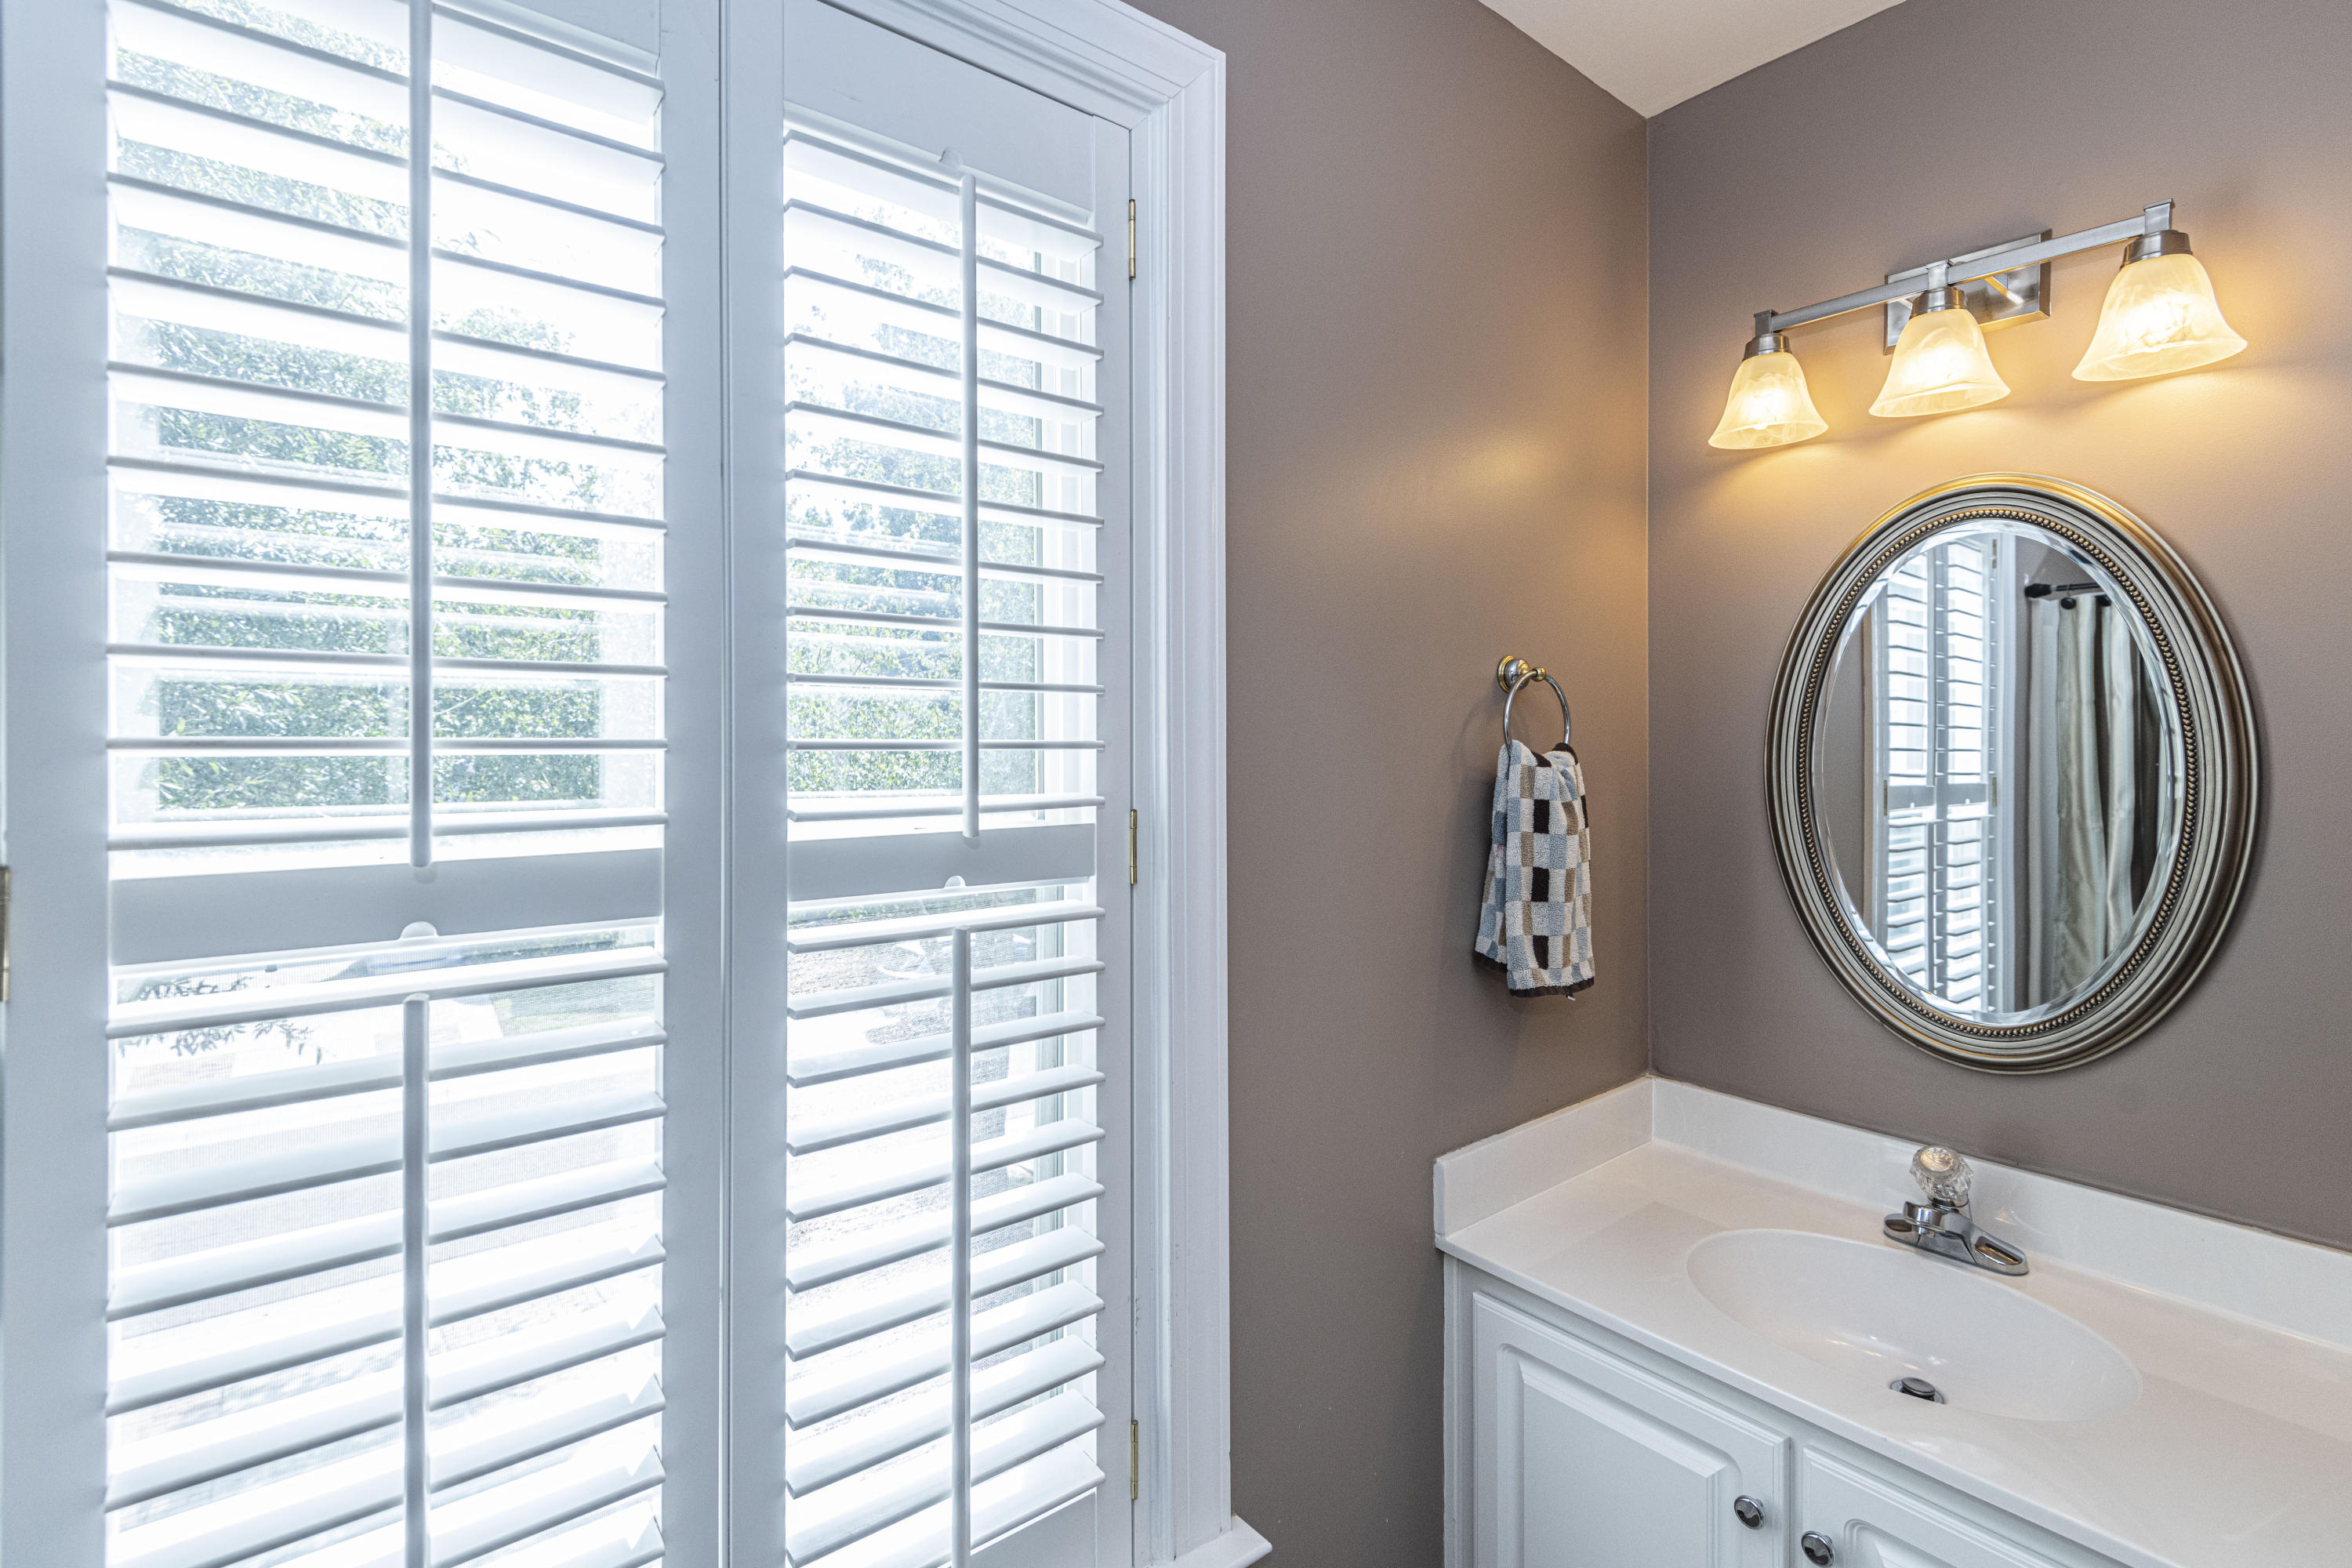 The Reserve at Wando East Homes For Sale - 1681 Lauda, Mount Pleasant, SC - 3